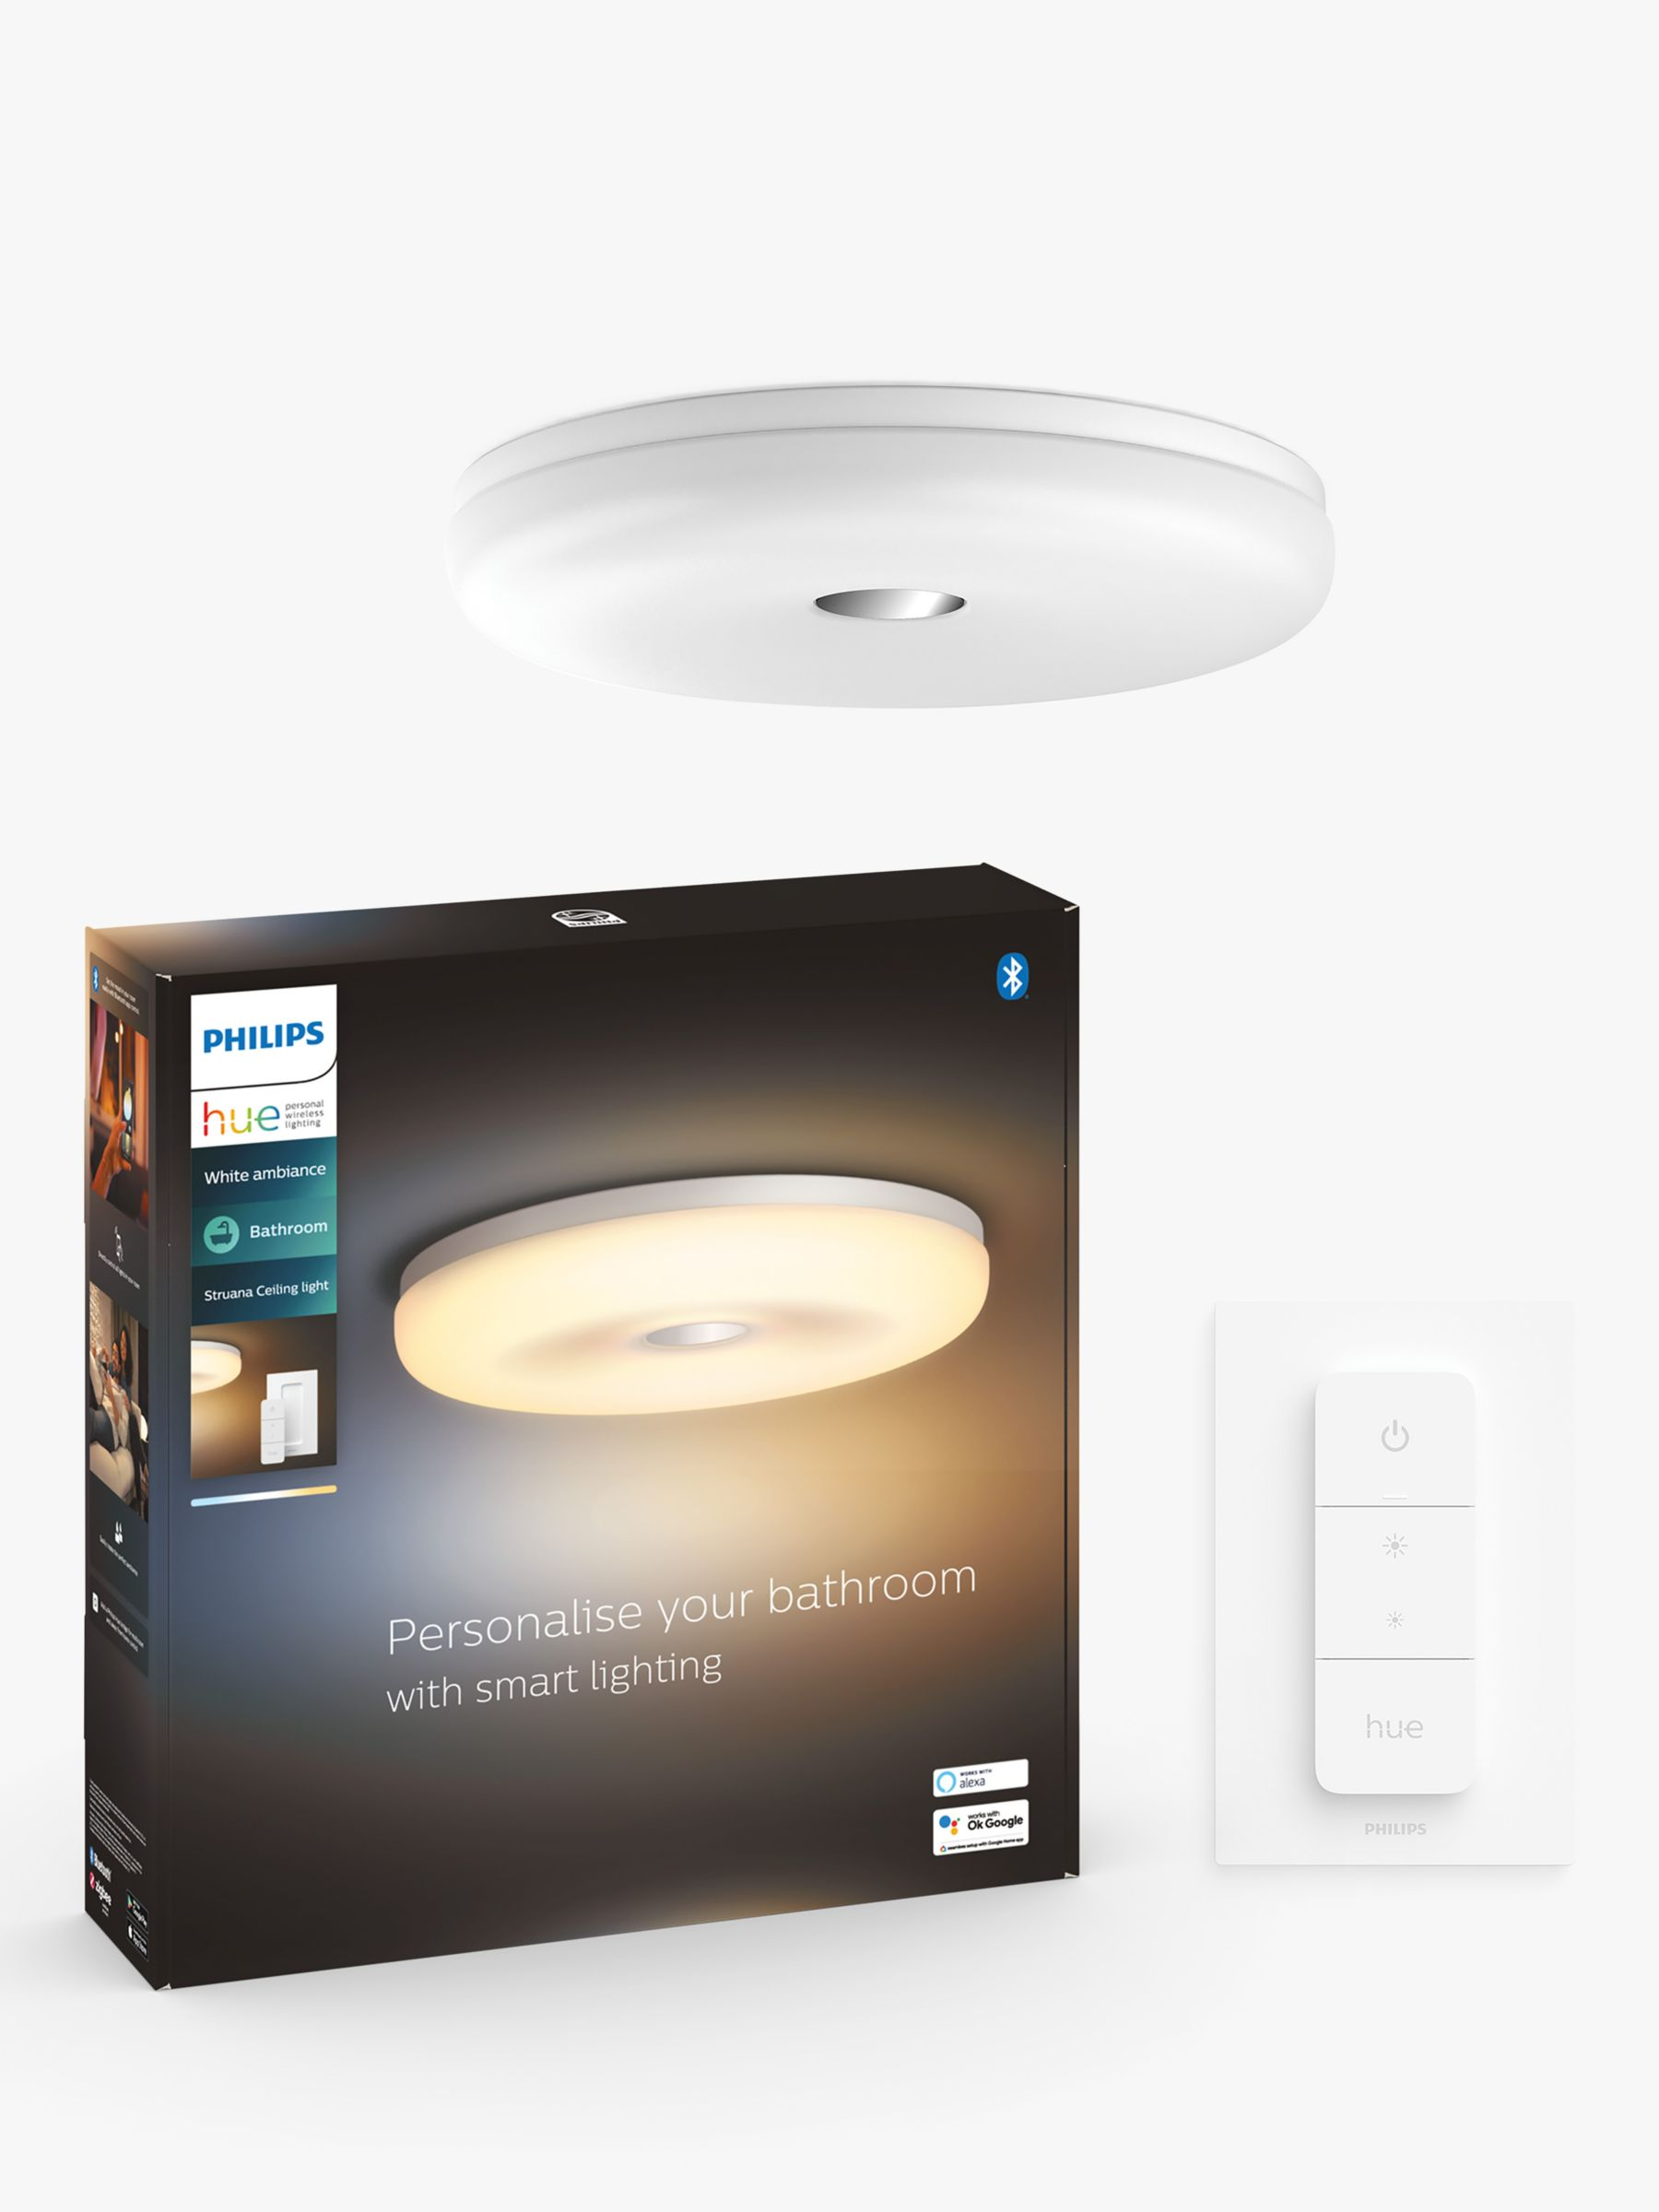 Philips Hue White Ambiance Struana Led Flush Bathroom Ceiling Light With Bluetooth And Dimmer Switch White At John Lewis Partners